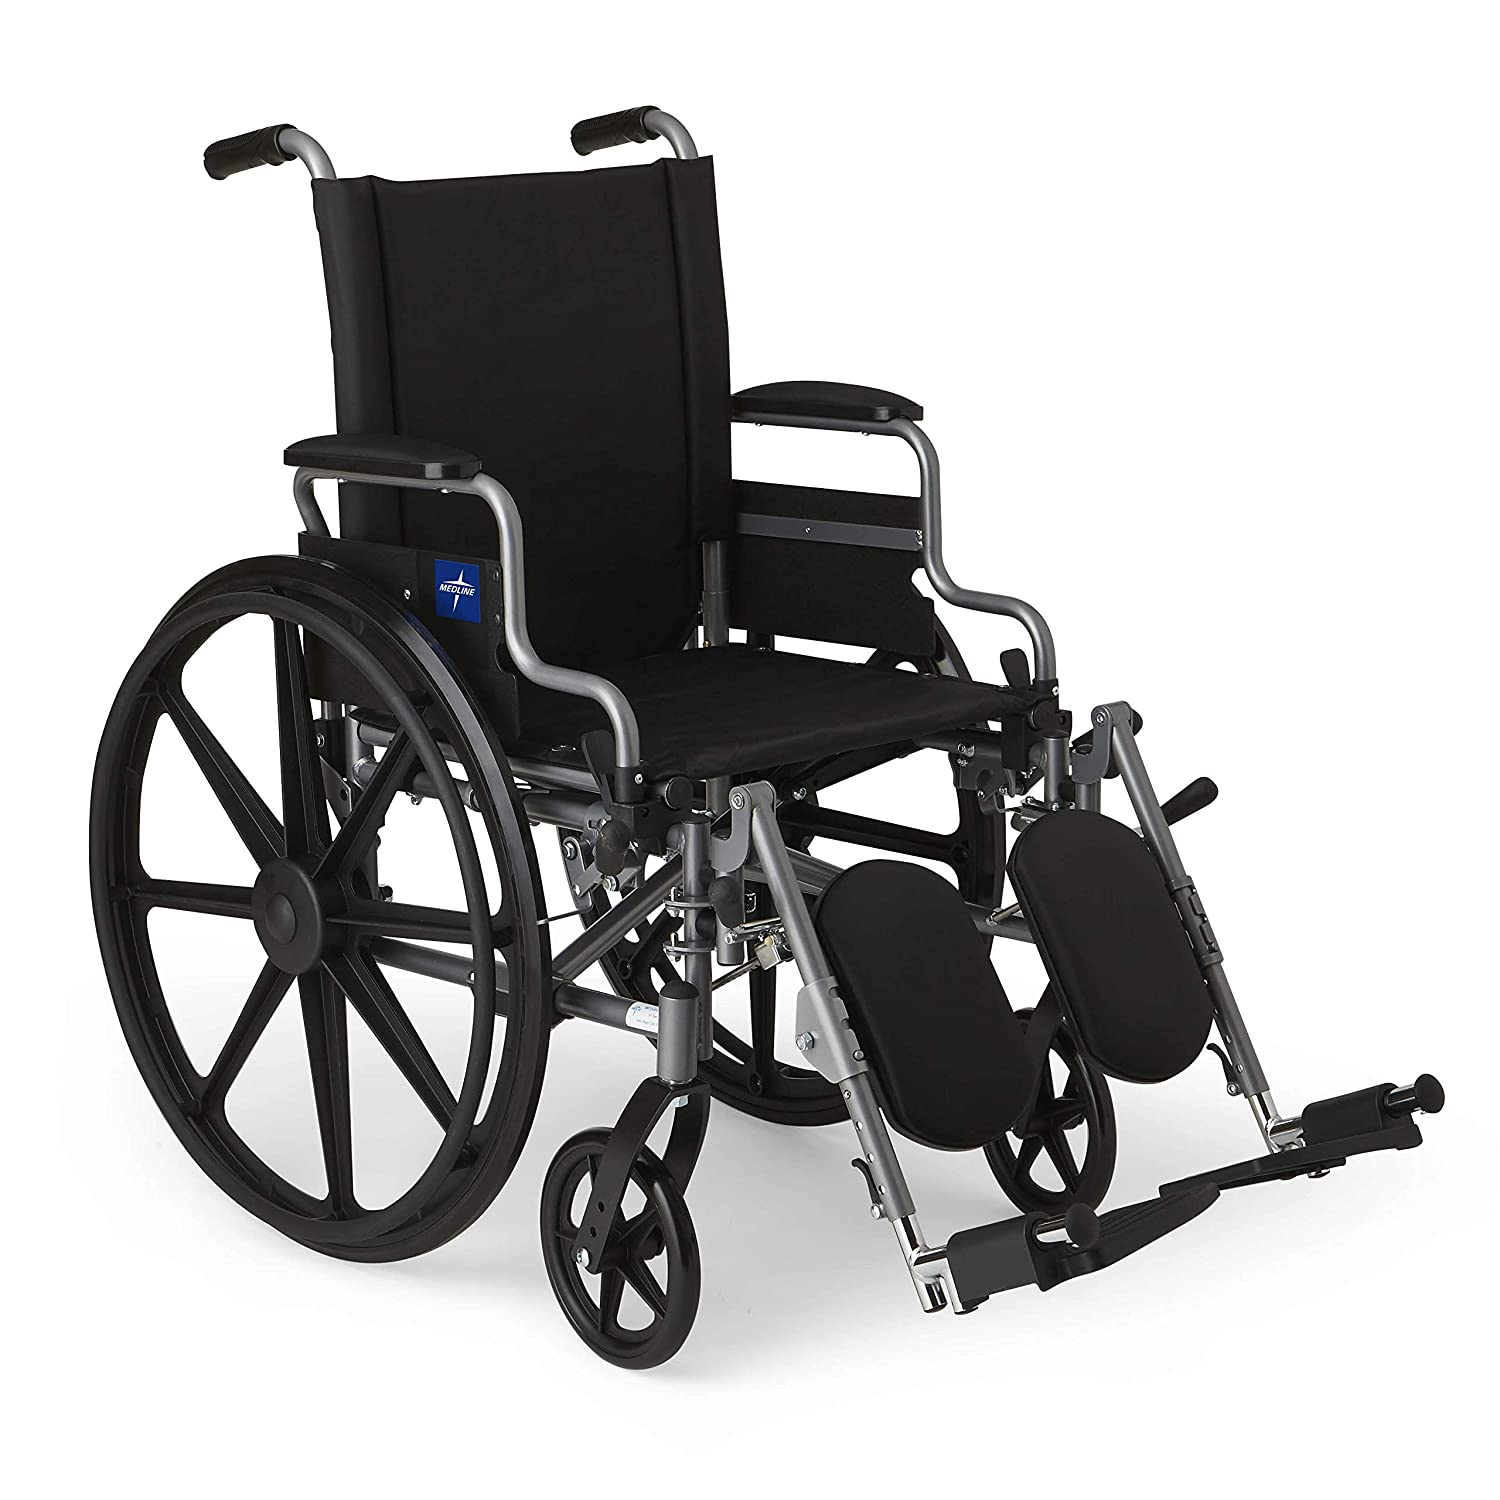 Medline Lightweight and User-Friendly Wheelchair with Flip-Back, Desk-Length Arms and Elevating Leg Rests for Extra Comfort, Gray, 20 inch Seat